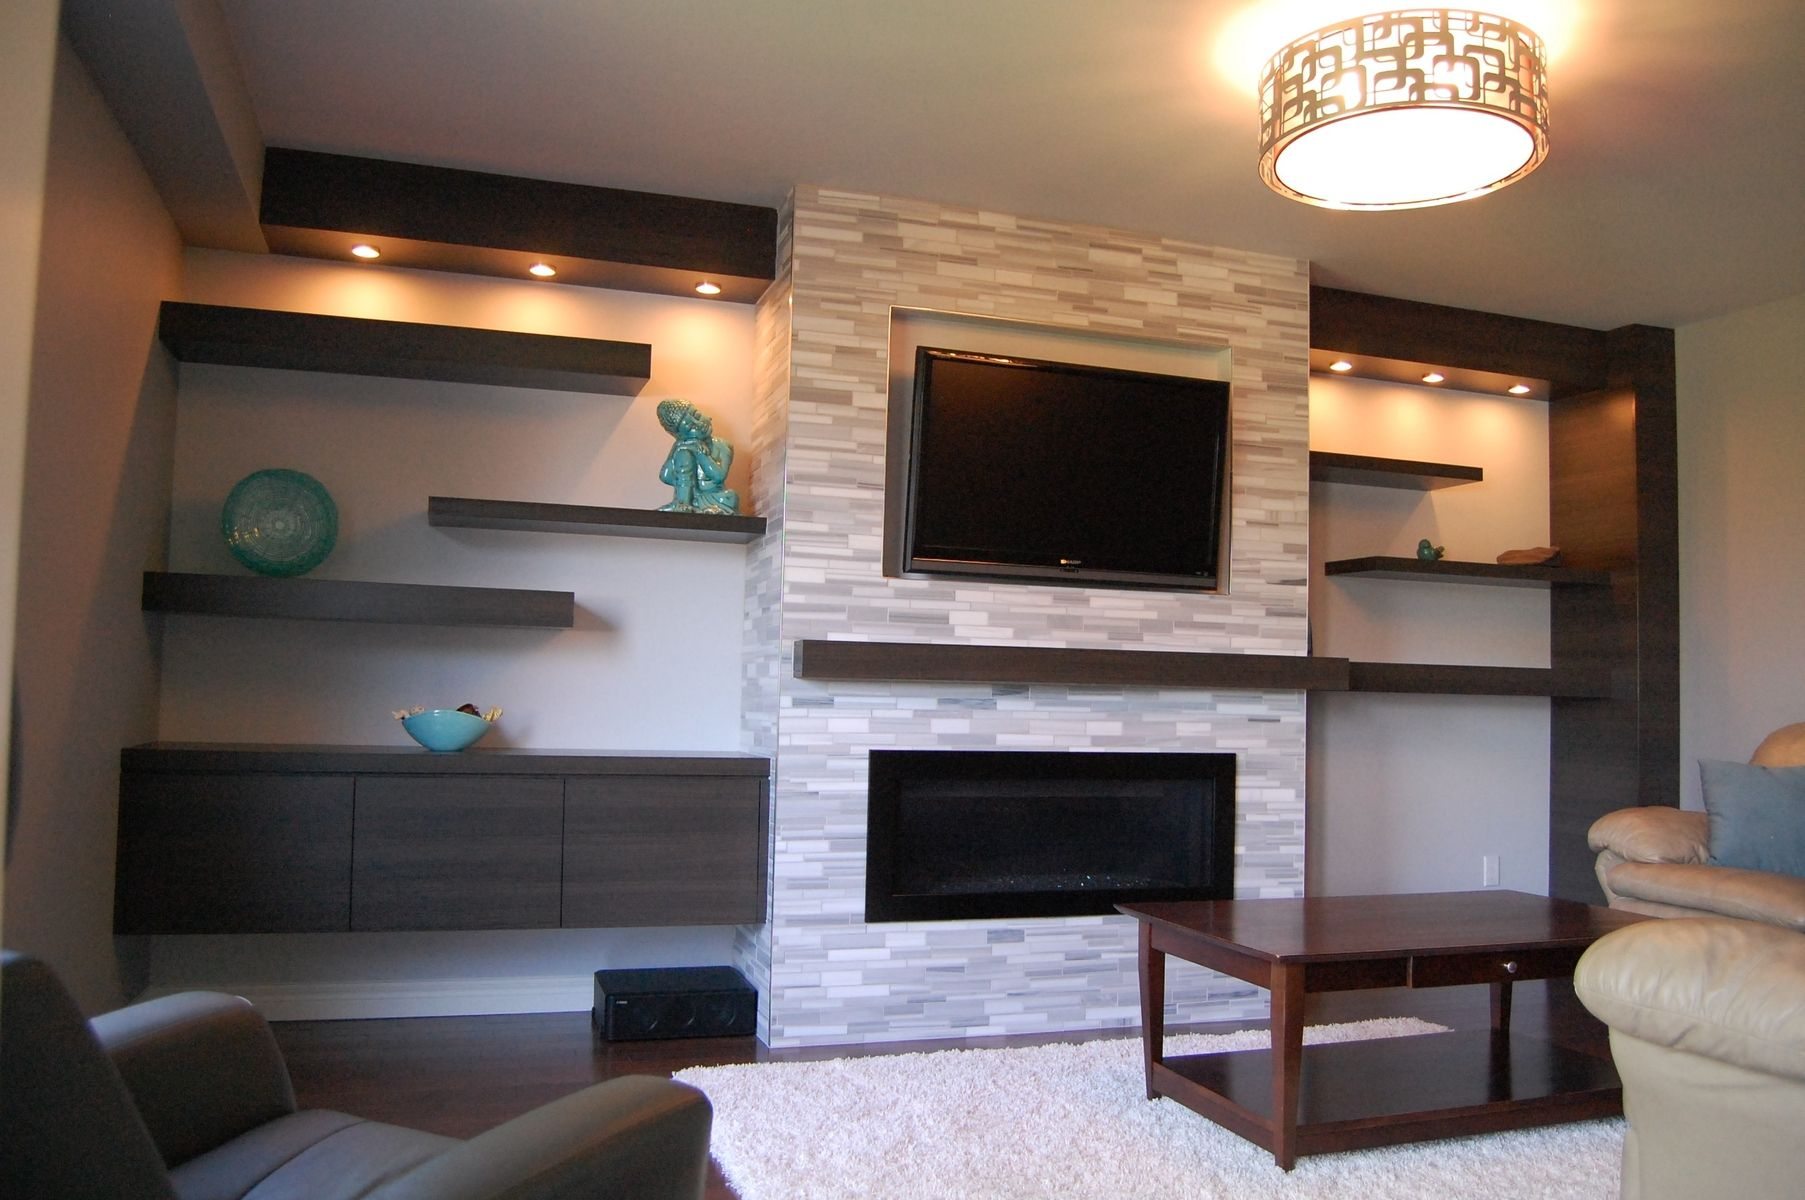 Modern Wall Units Living Room Antique Tables With Fireplace And Tv Also Drum Ceiling Lamp Idea